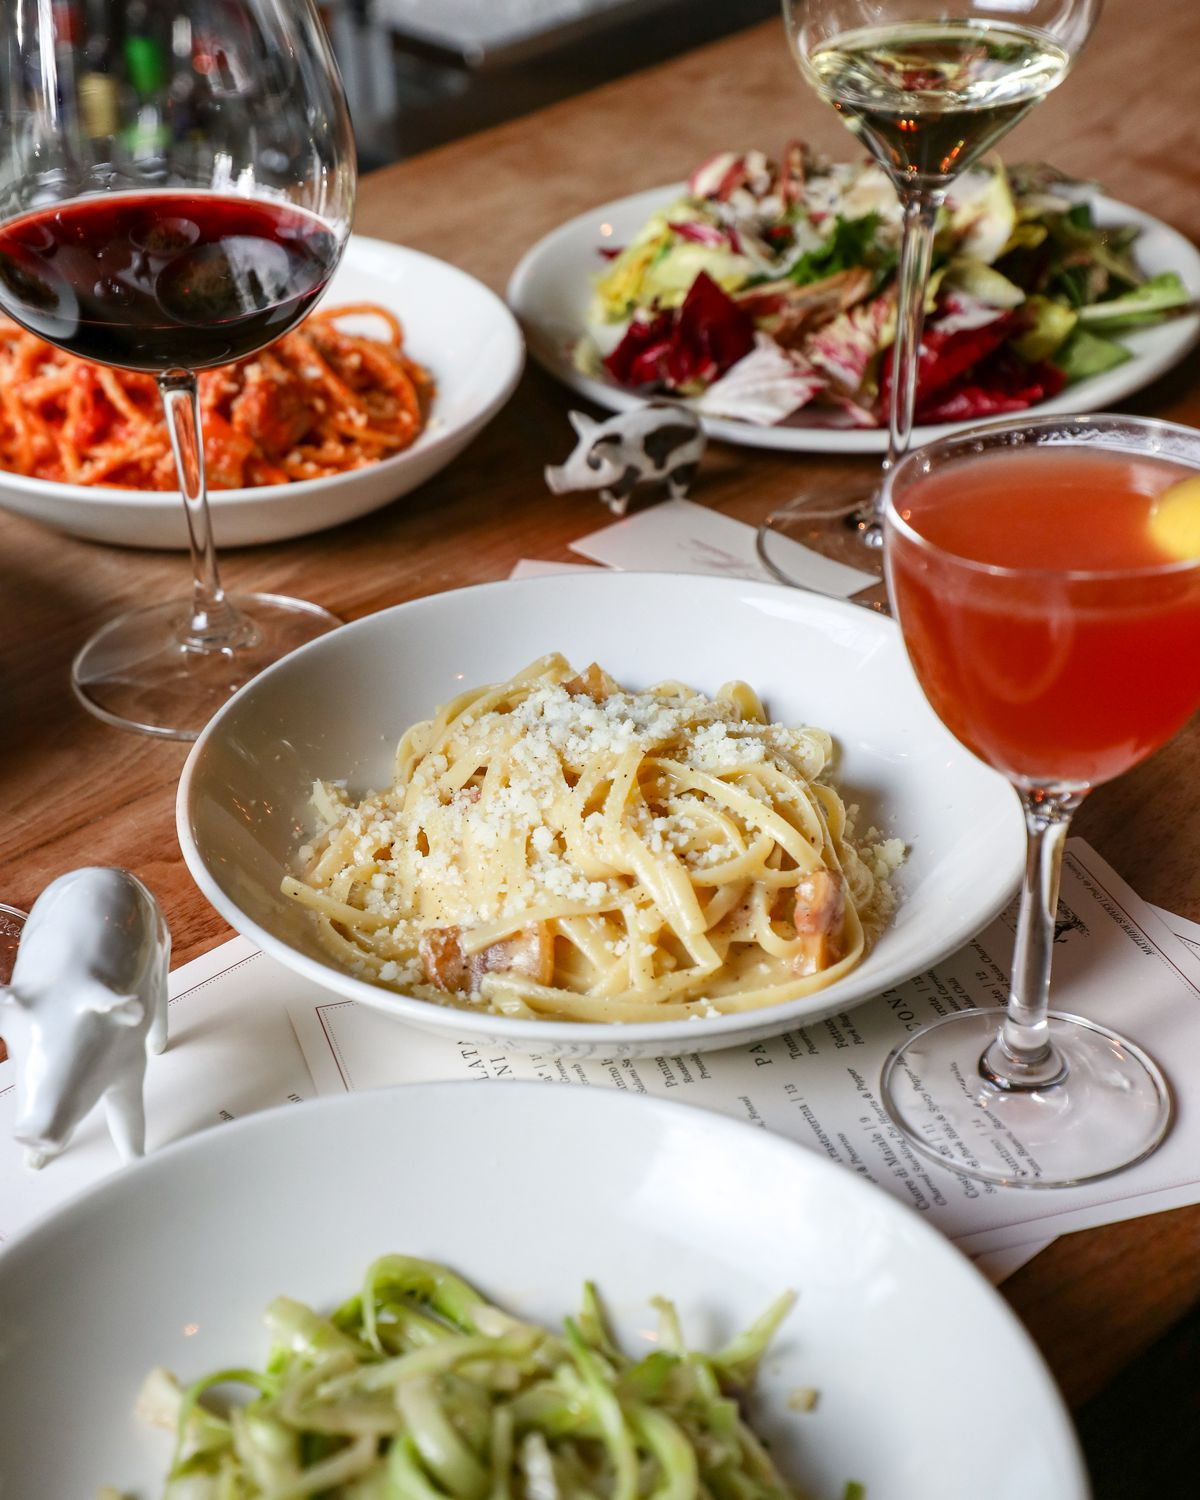 Sample dishes from Maialino Mare